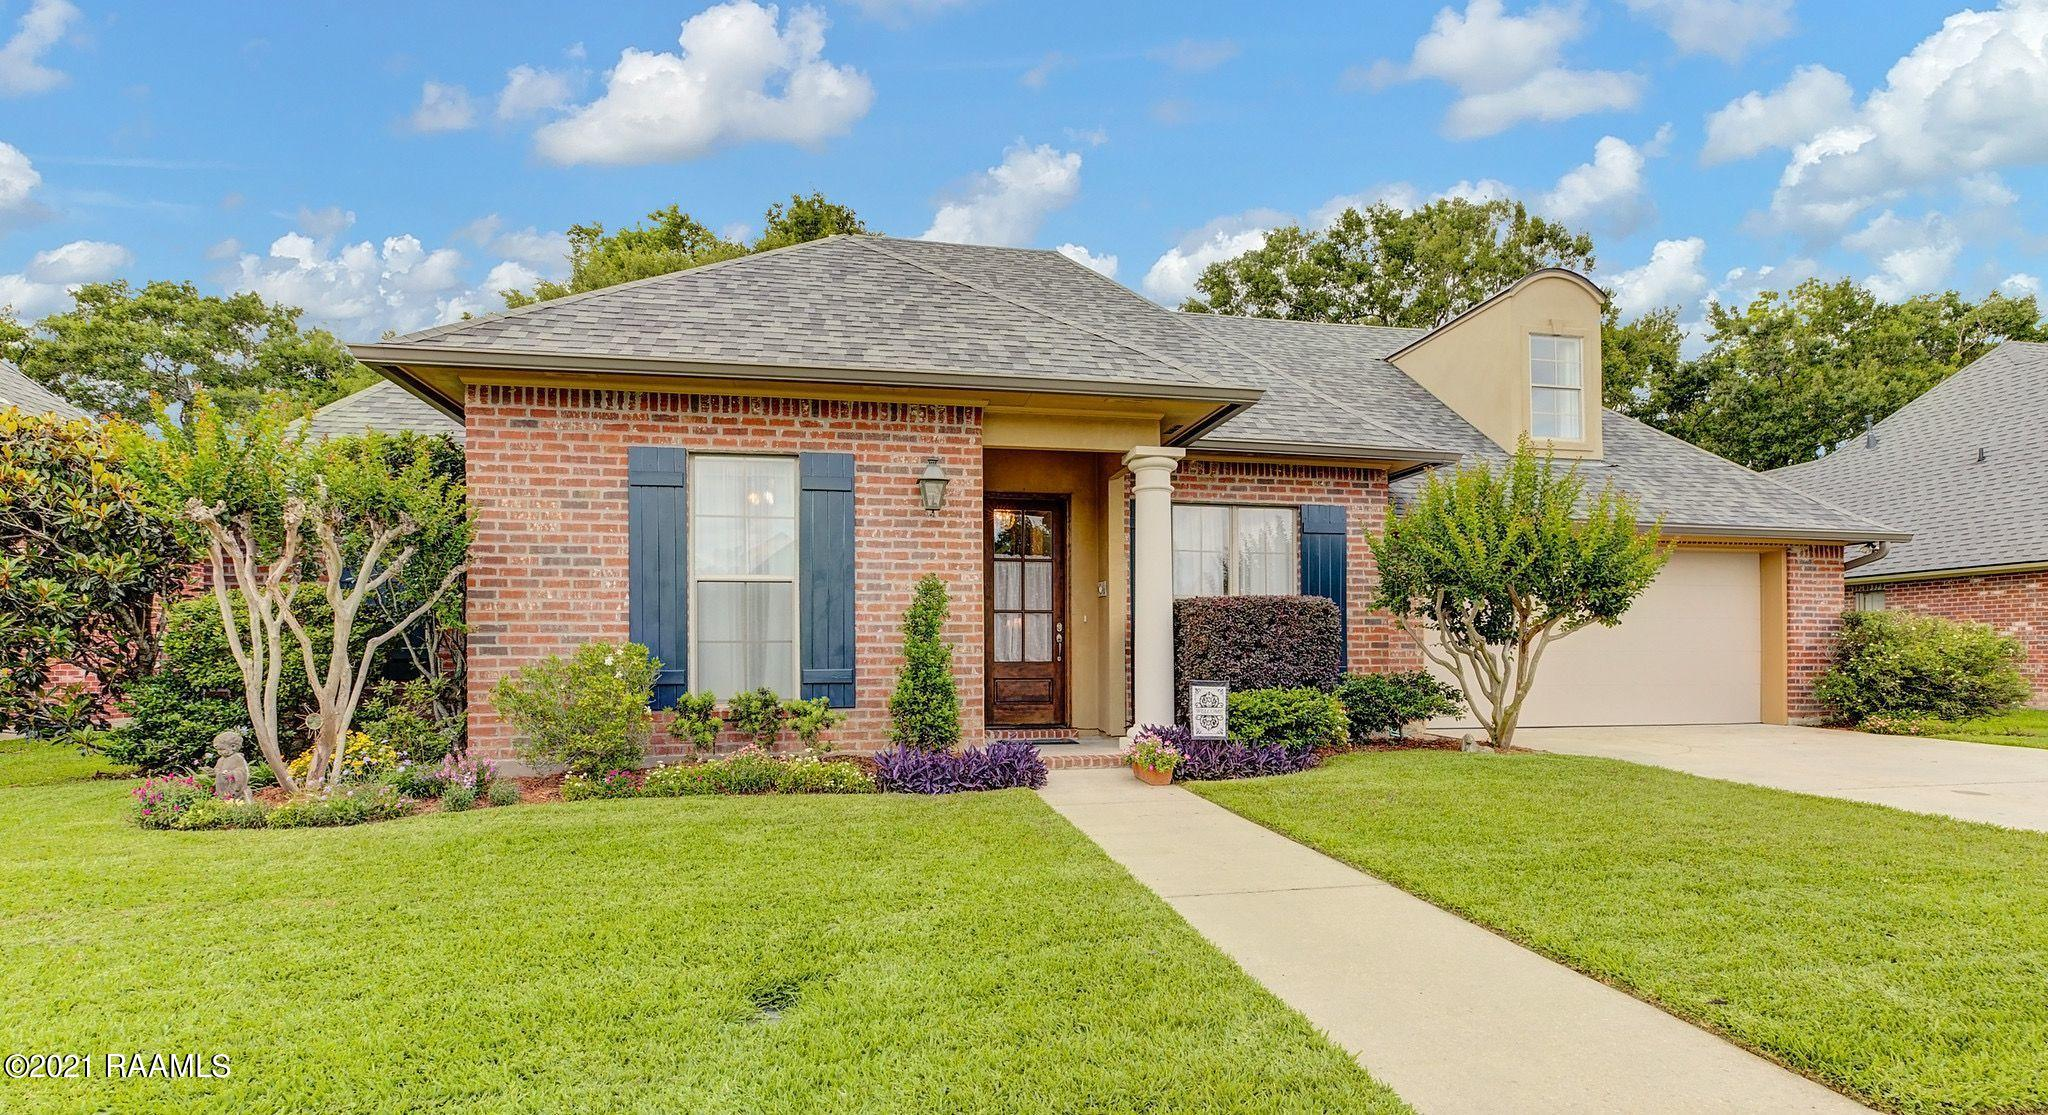 149 Willow Bend, Youngsville, LA 70592 Photo #4